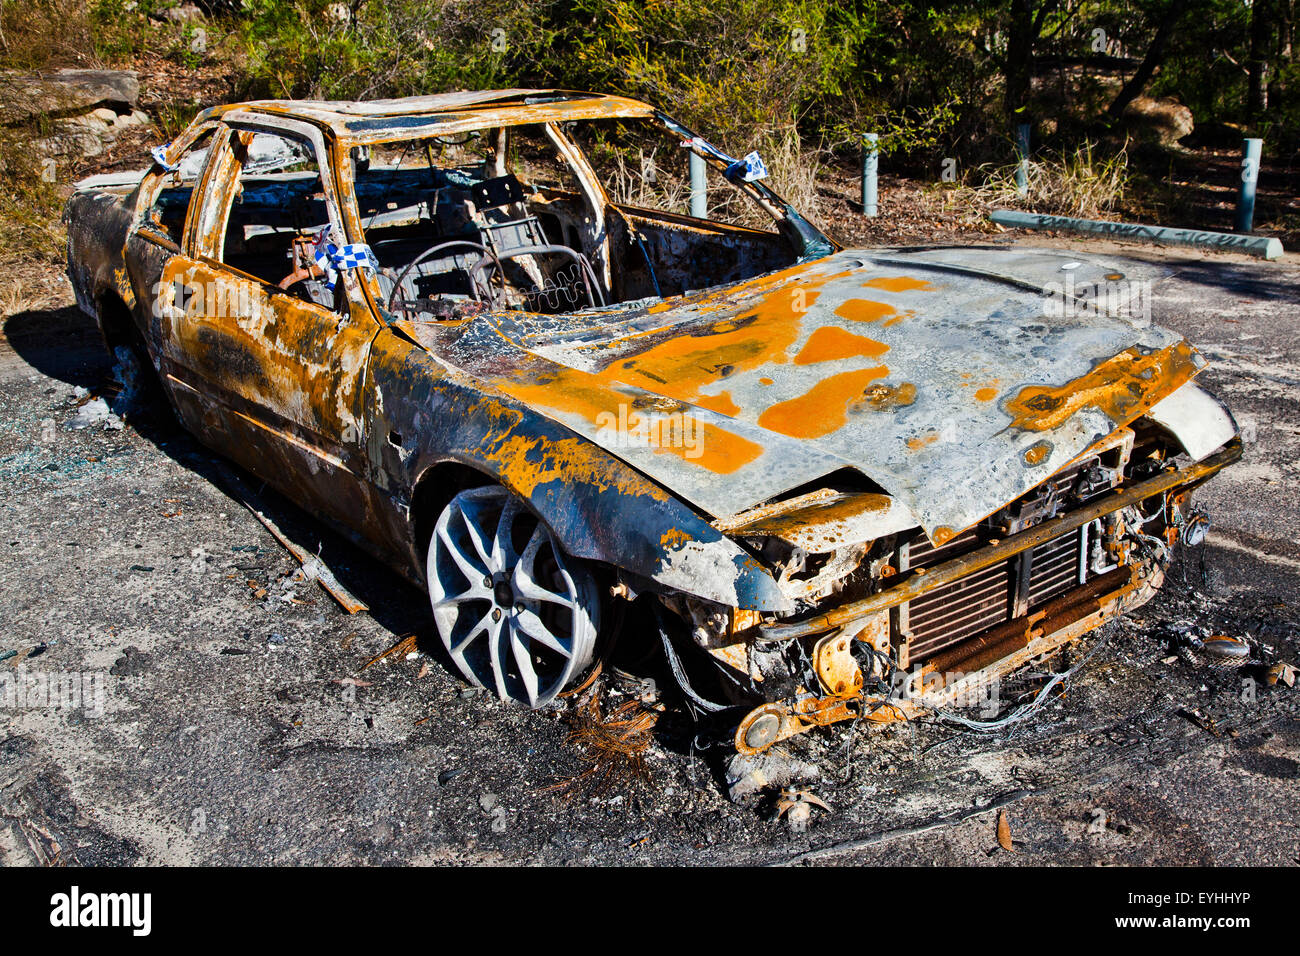 burned out car - Stock Image